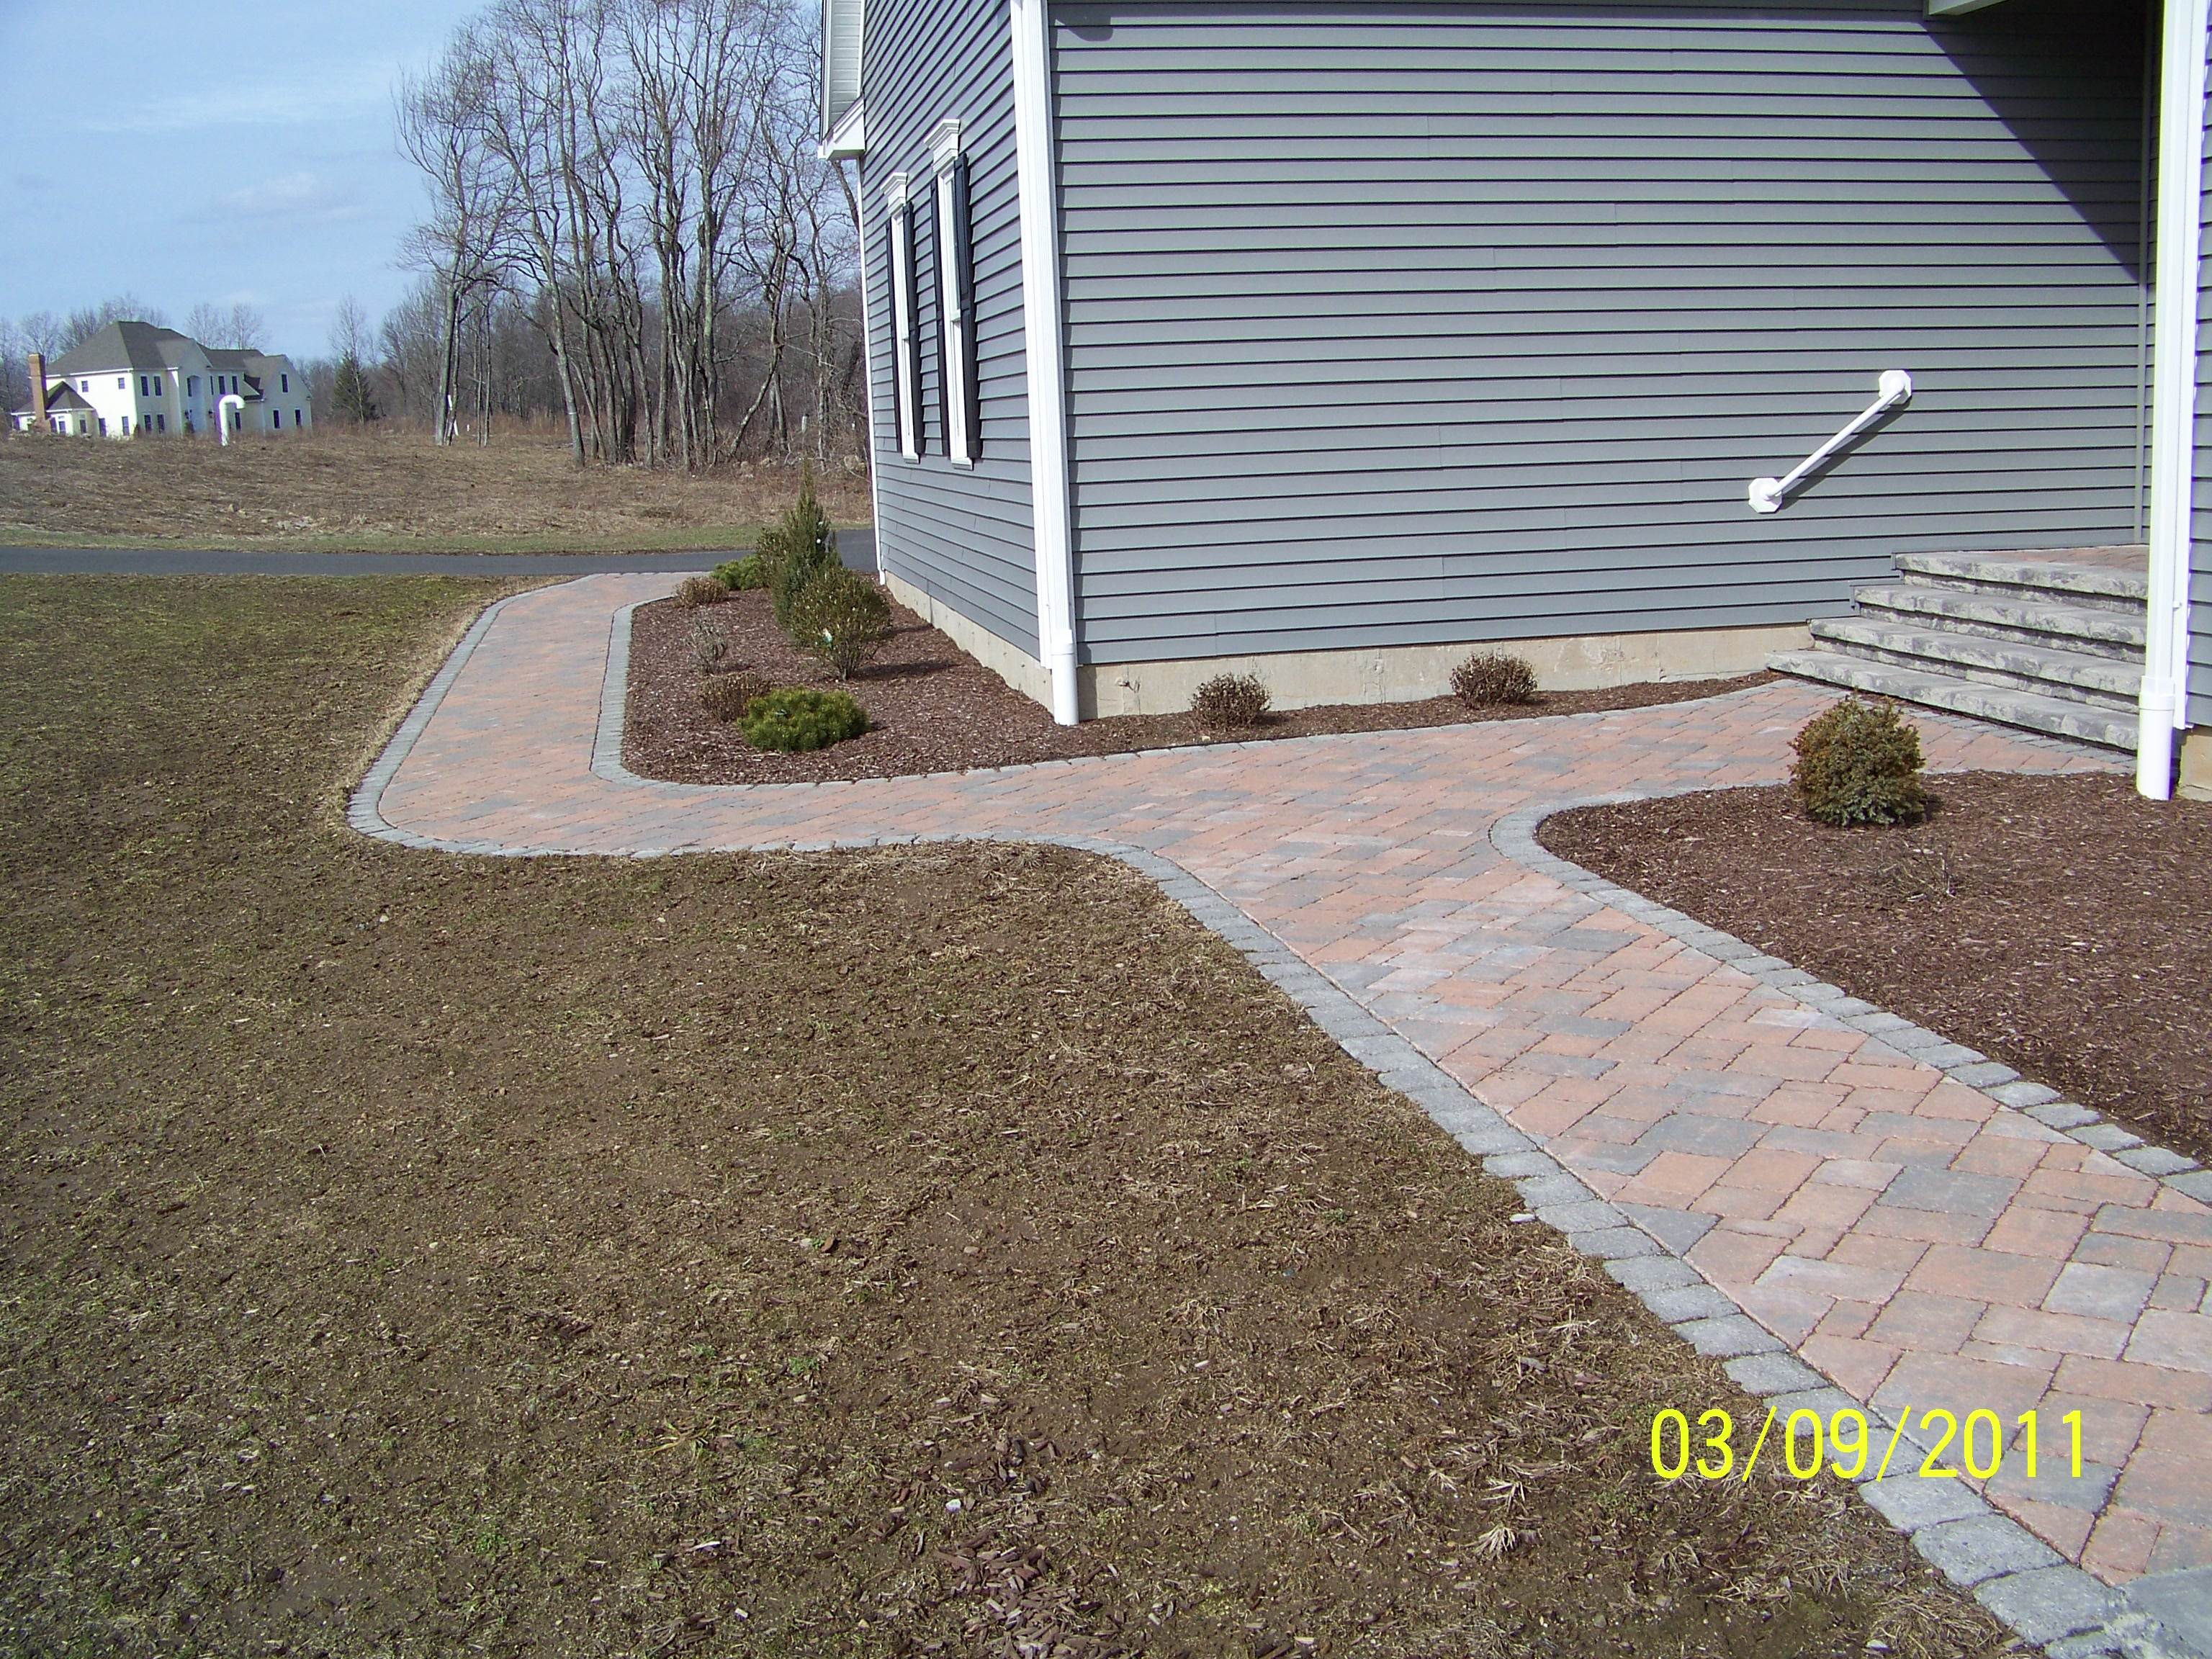 Landscape Services in Manchester, CT